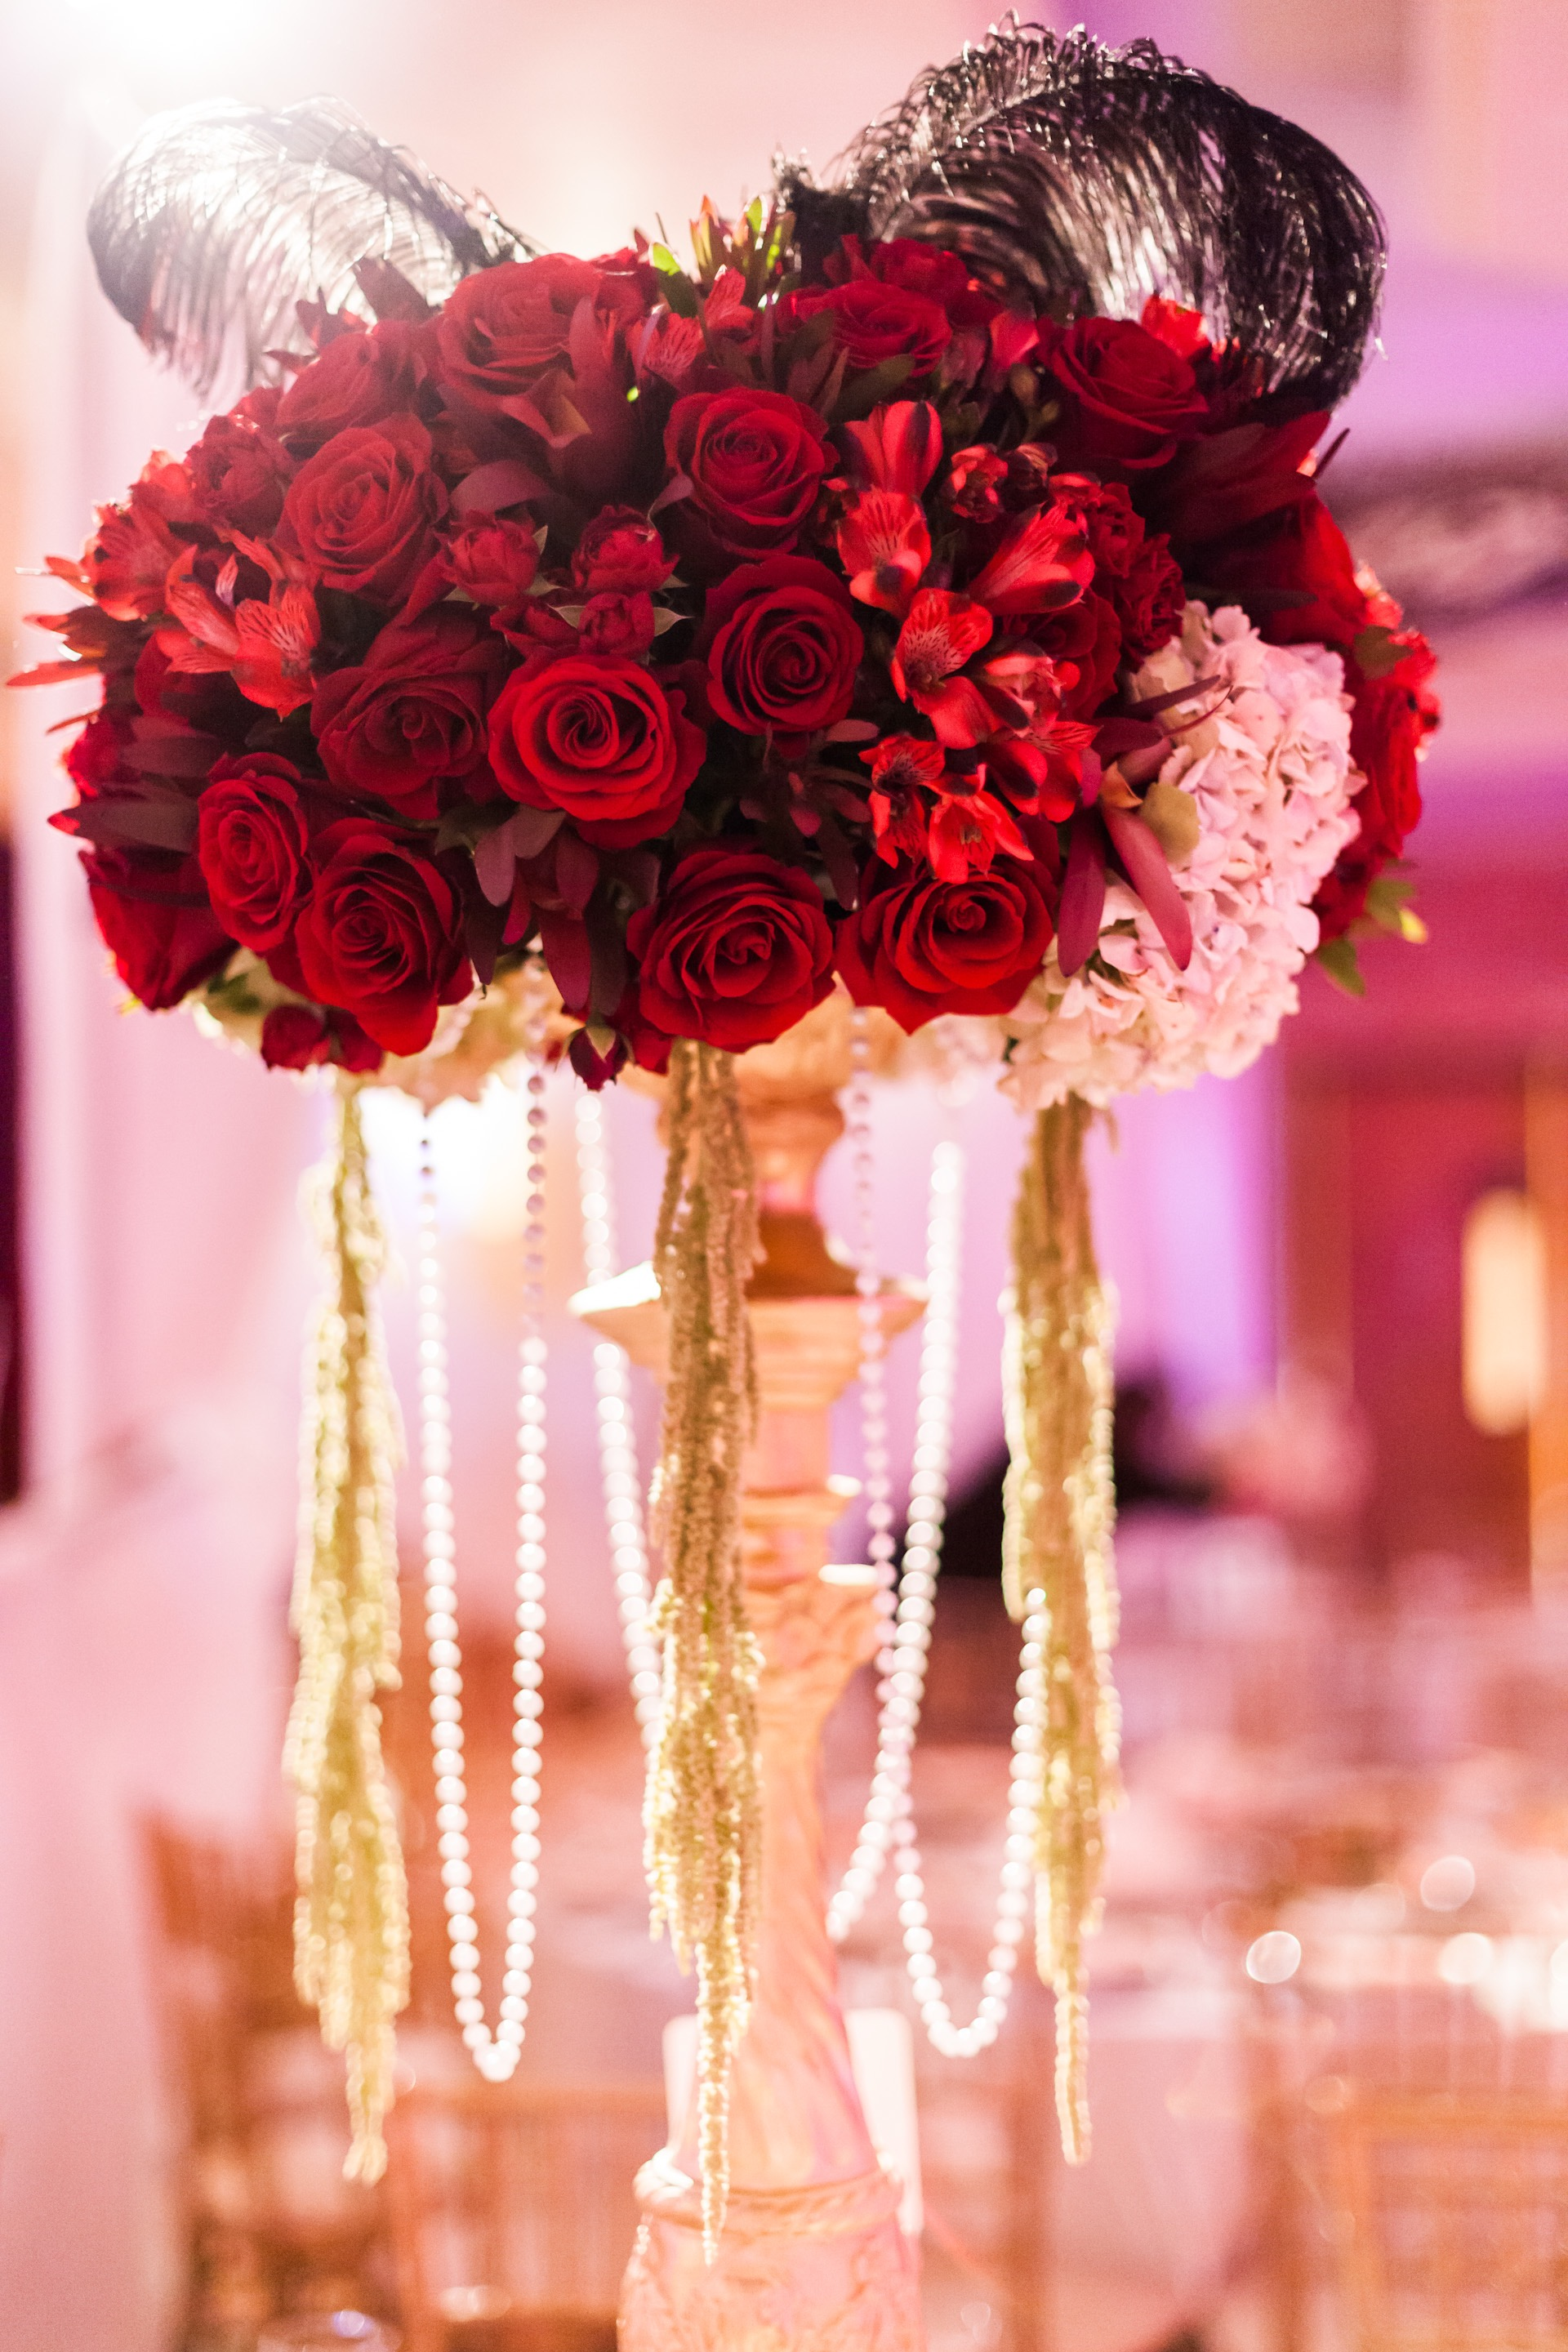 15 romantic red wedding centerpieces ideas 19319 centerpieces ideas red theme rose centerpieces for weddings image 12 of 15 junglespirit